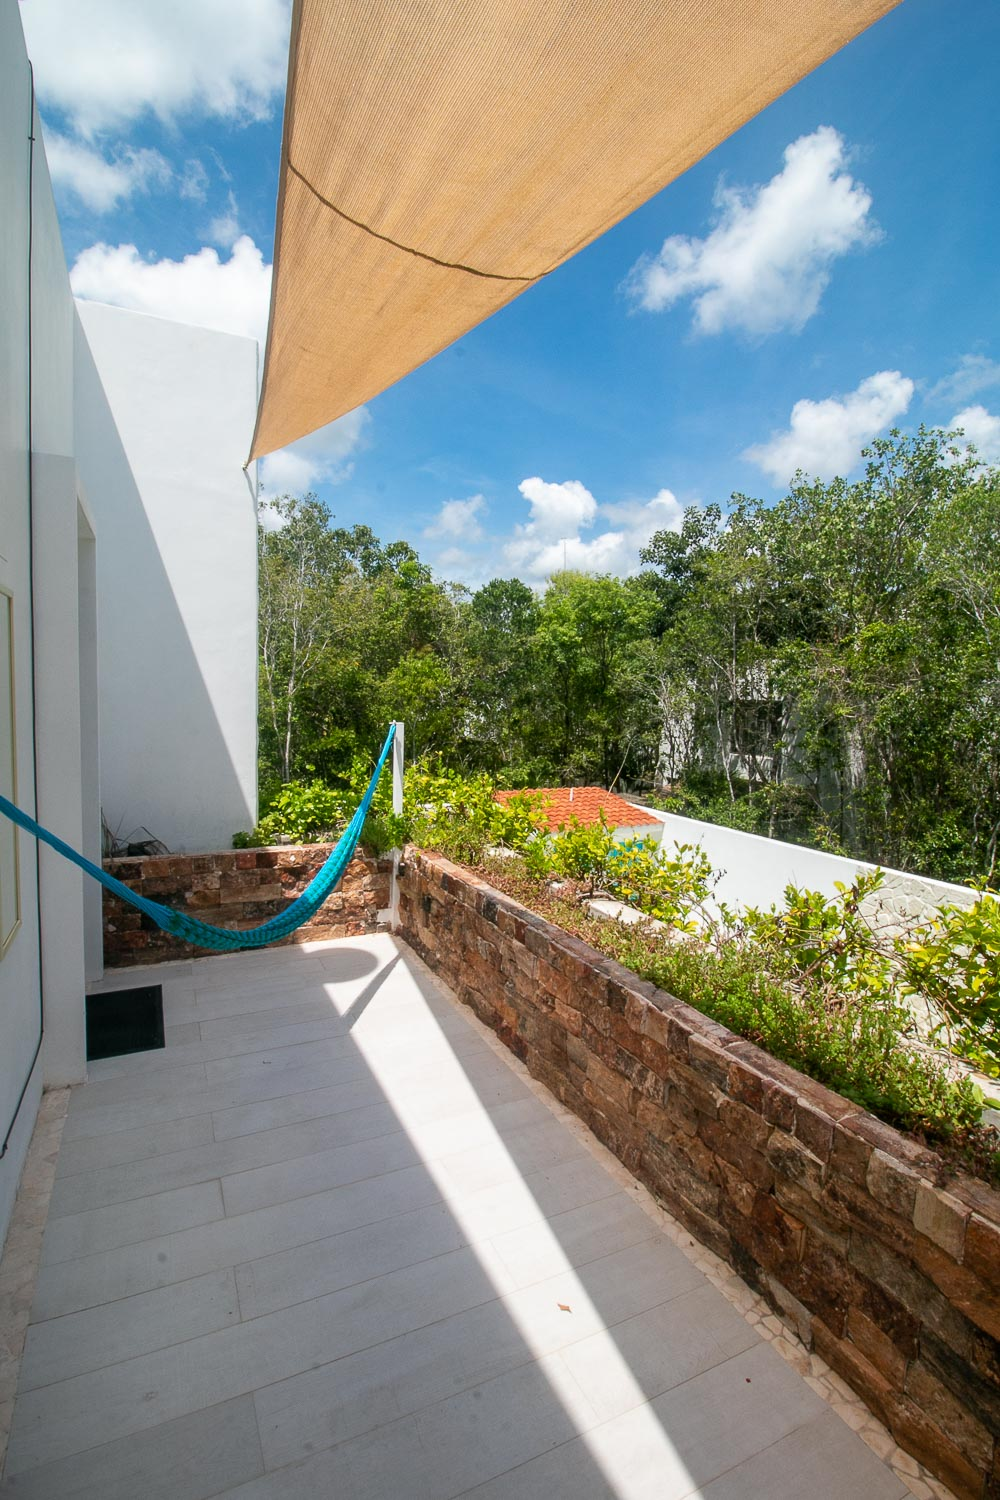 4-bedroom-house-in-a-gated-community-in-Tulum-Exterior